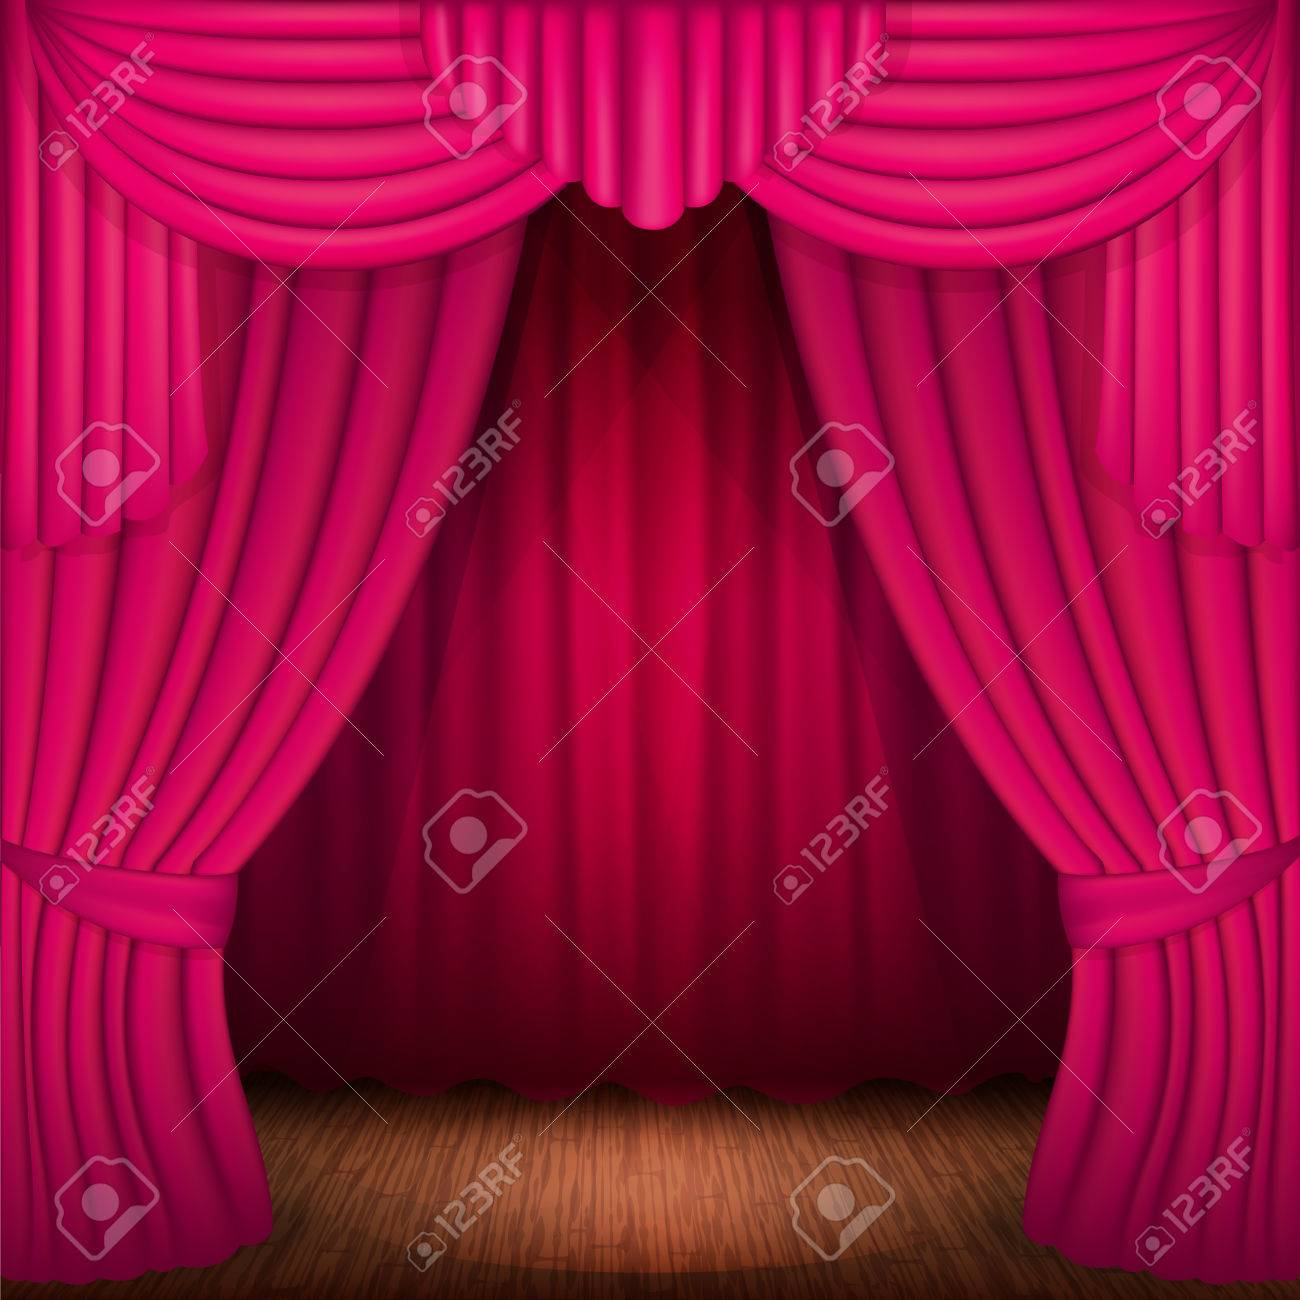 lighting curtains. Scene With Pink Curtains, Curtain Velvet Drapes And Accent Lighting Stock Vector - 41257816 Curtains